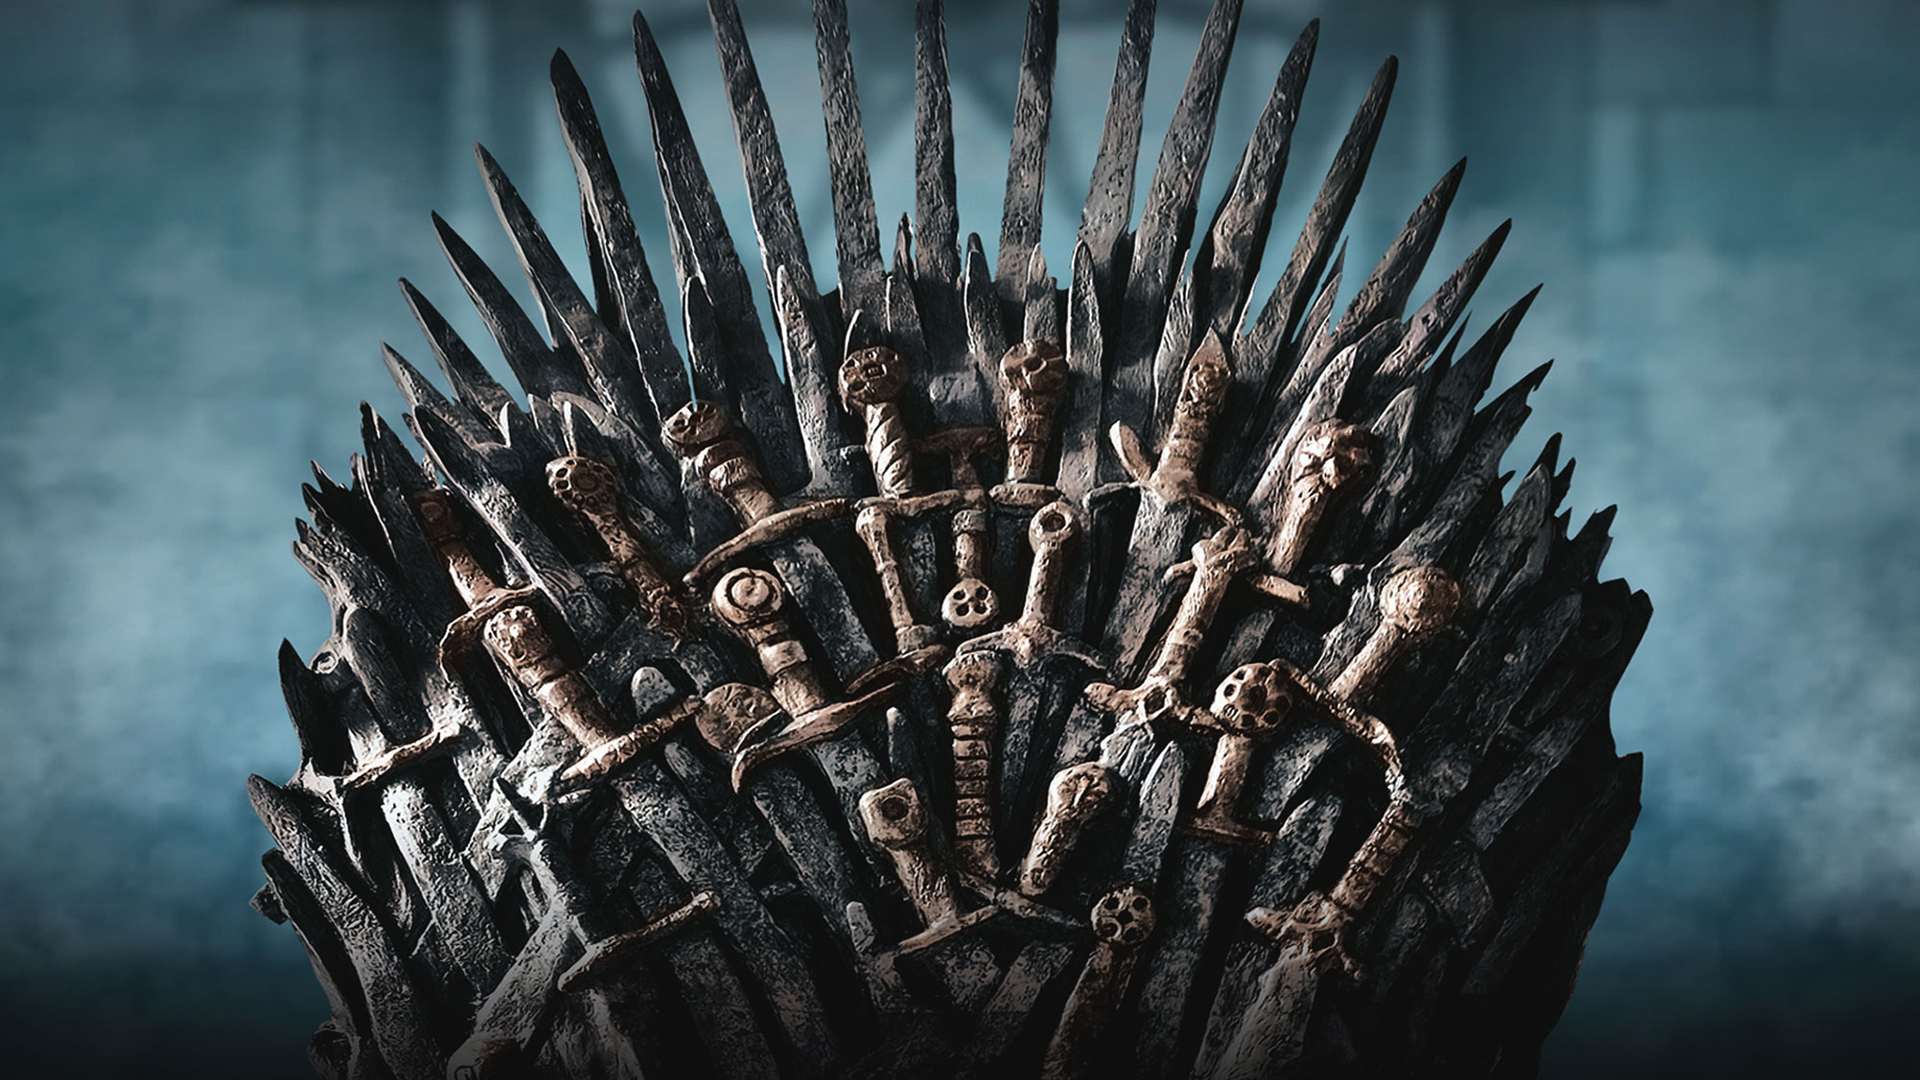 Game of Thrones Iron Throne. Virtual background to use on Zoom, Microsoft Teams, Skype, Google Meet, WebEx or any other compatible app.